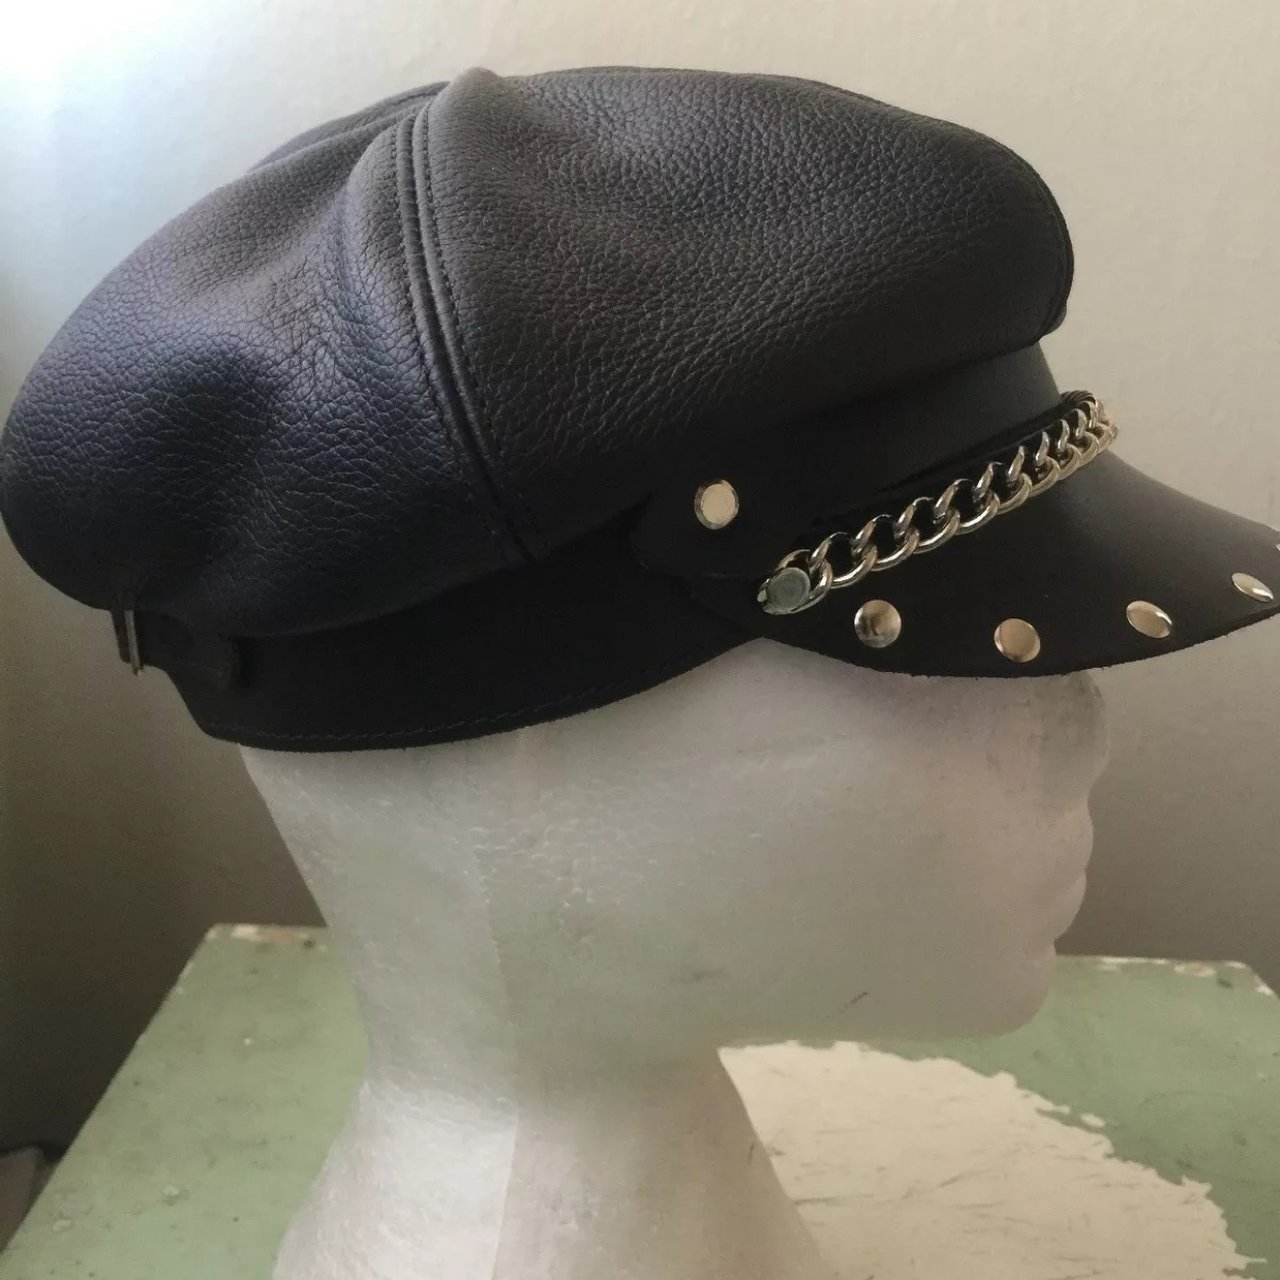 483995456d8 New Genuine leather biker hat one size chain studded heavy - Depop